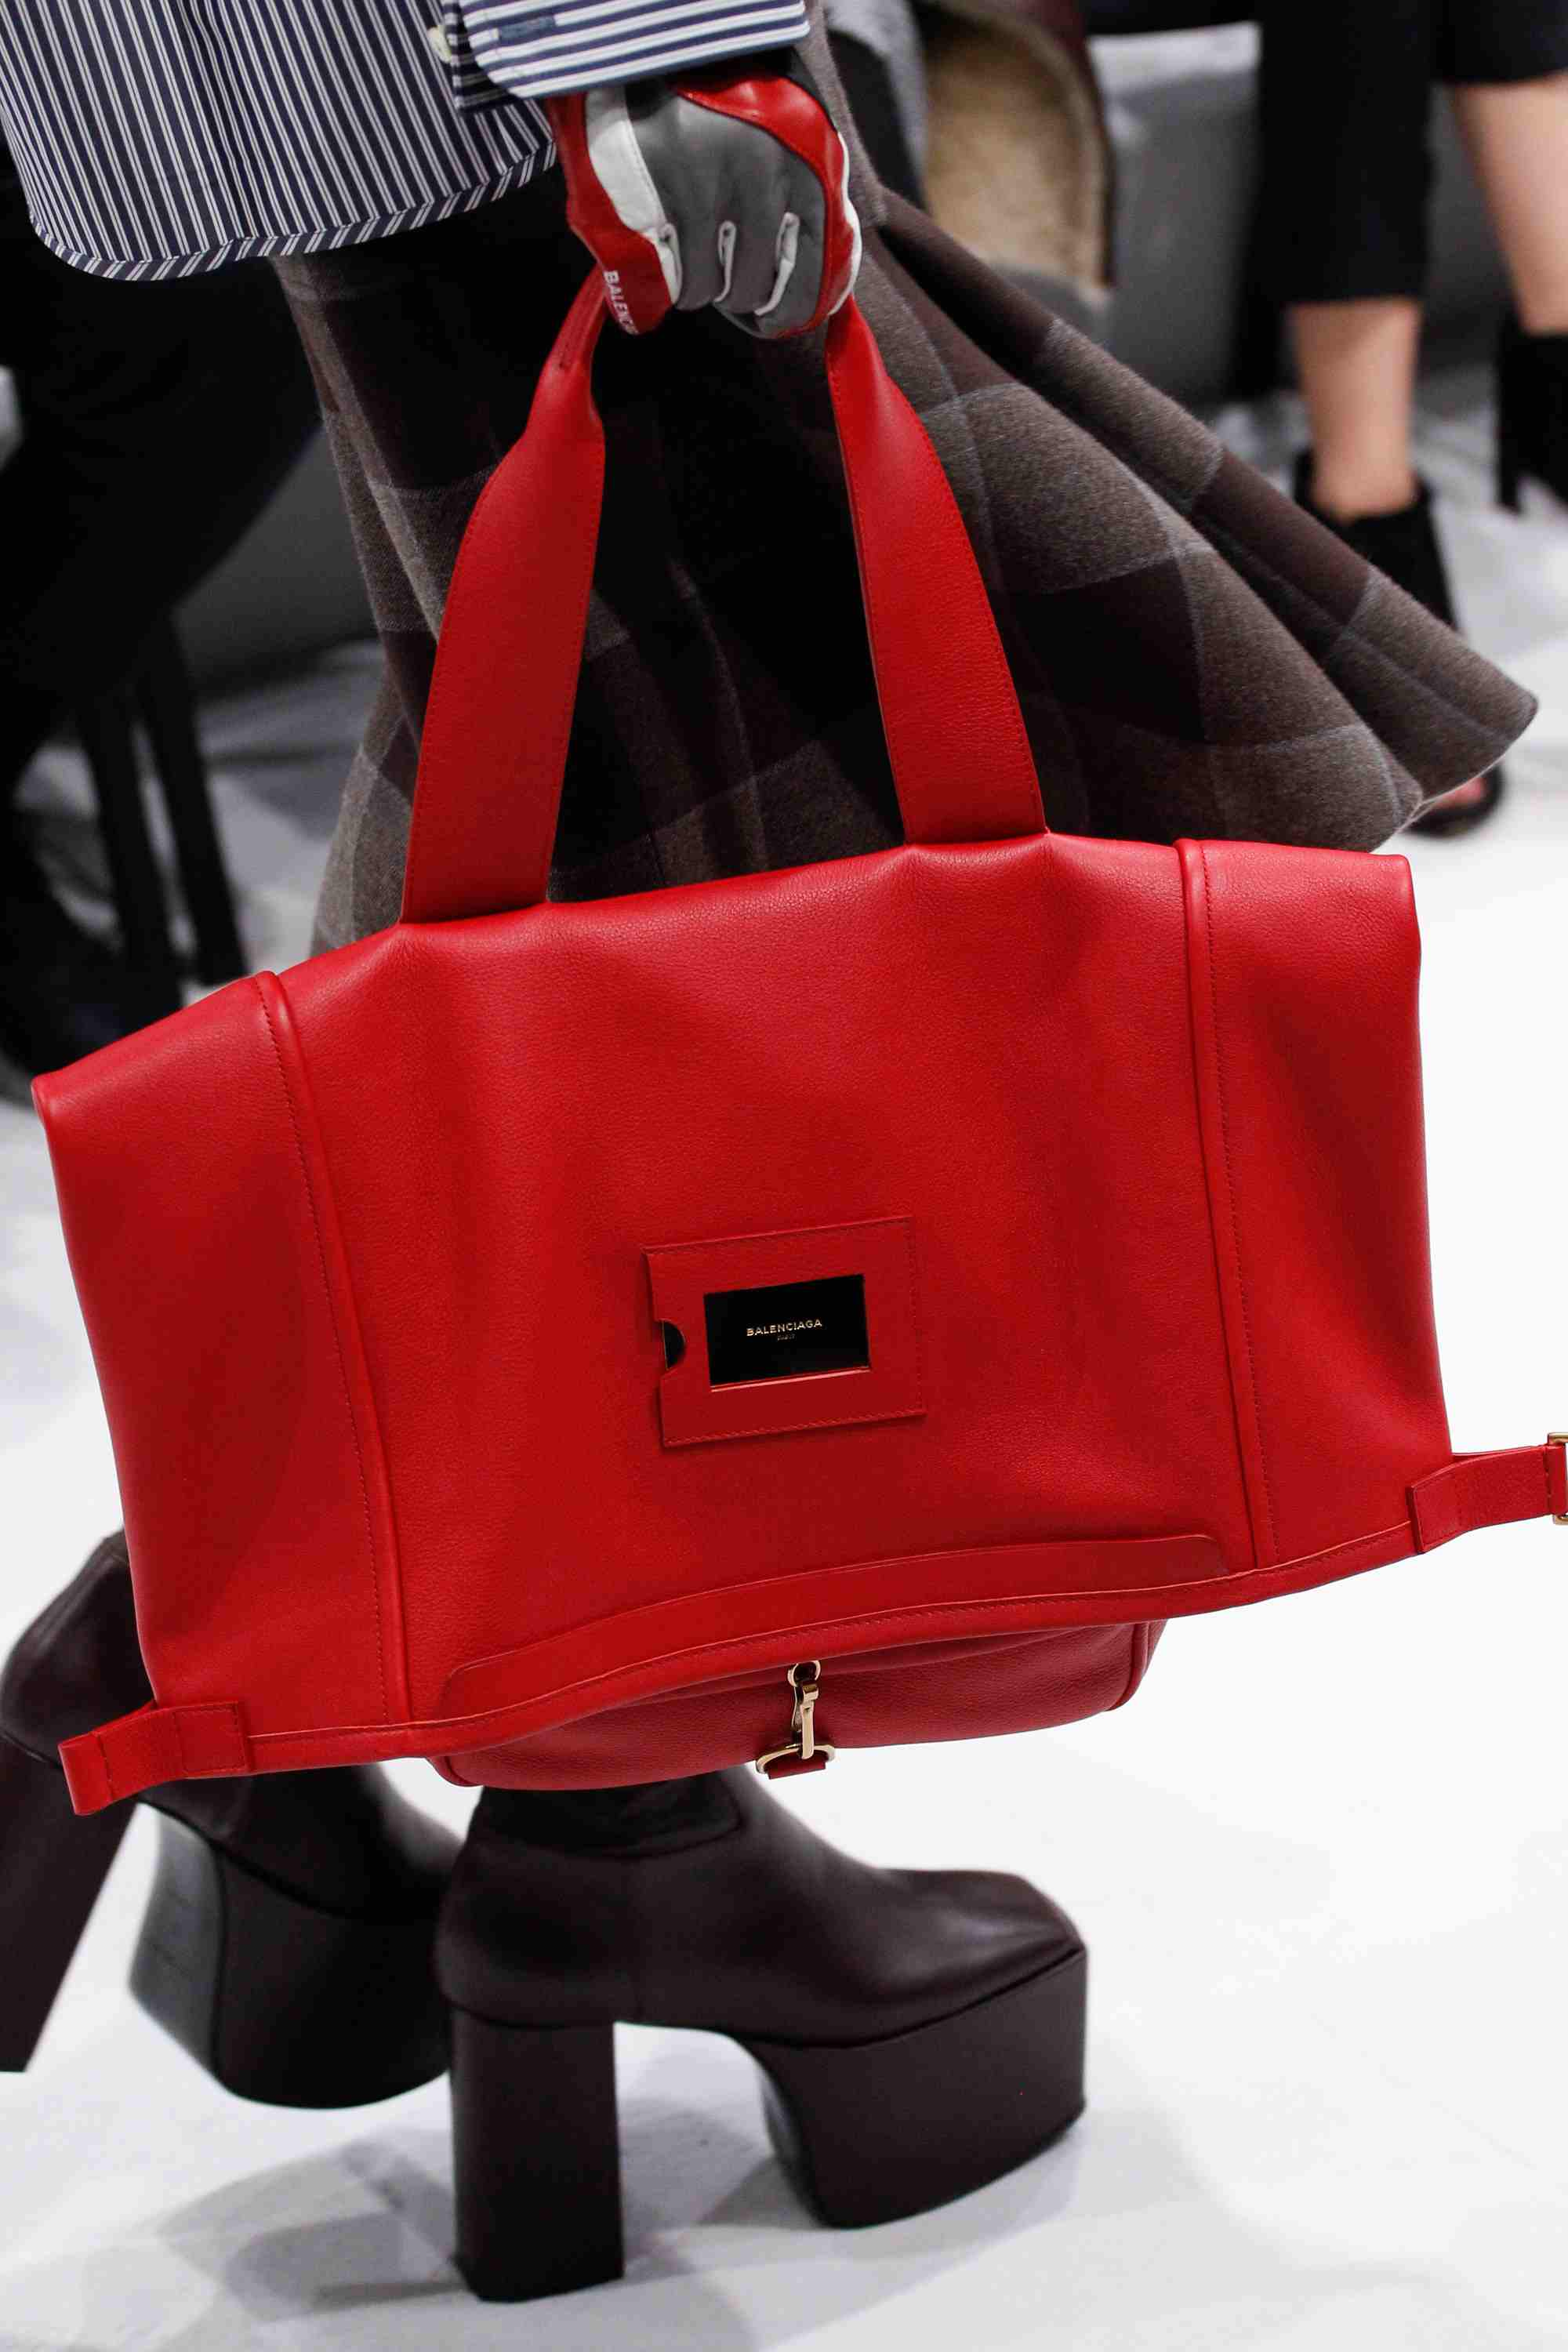 Balenciaga Fall/Winter 2016 Runway Bag Collection – Spotted Fashion